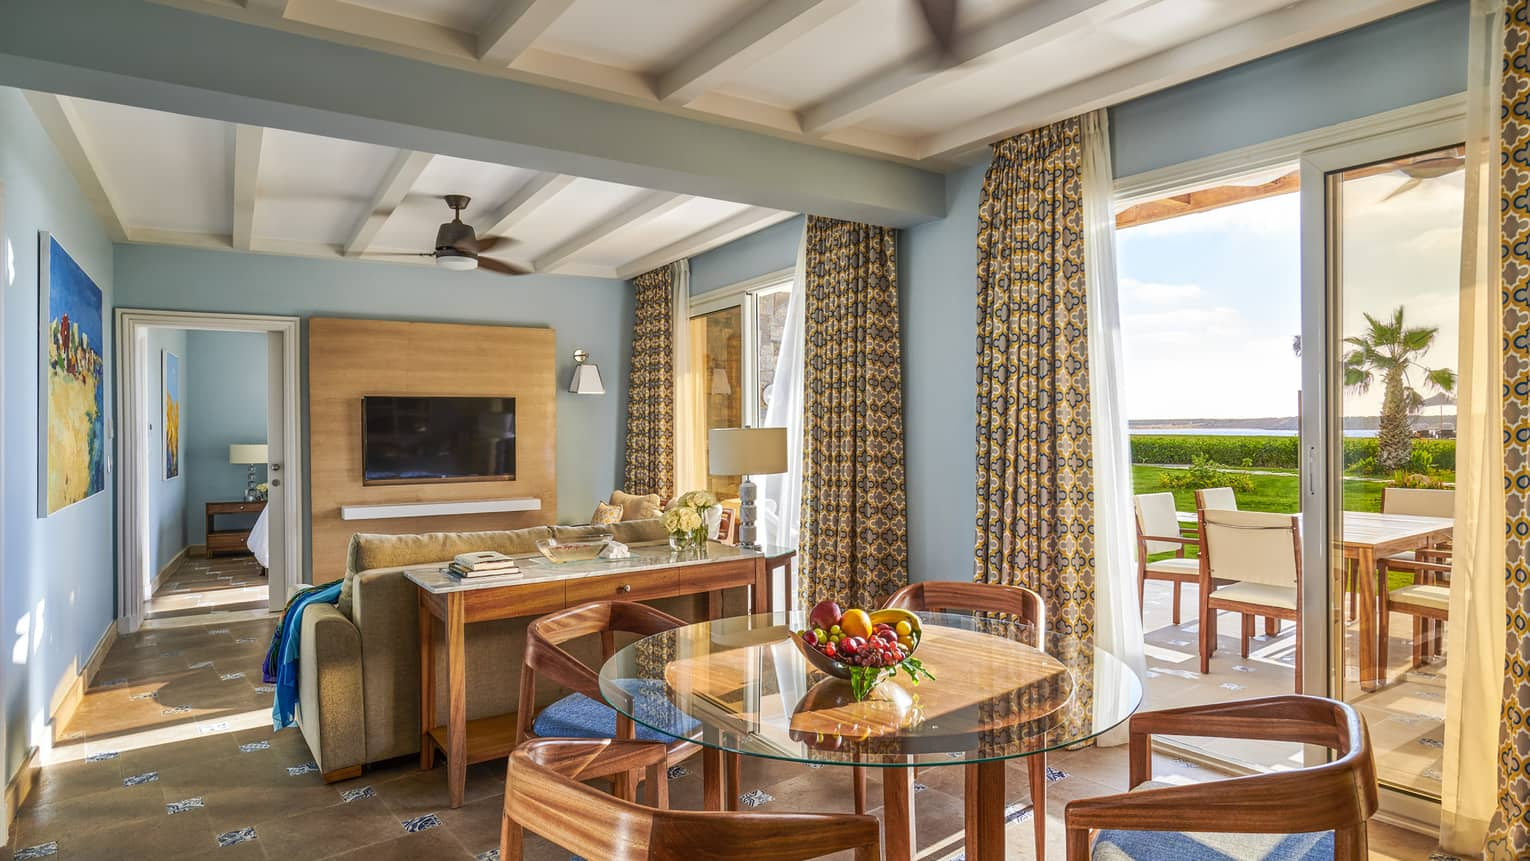 A brightly-colored beach suite overlooking the marsh at four seasons hotel alexandria